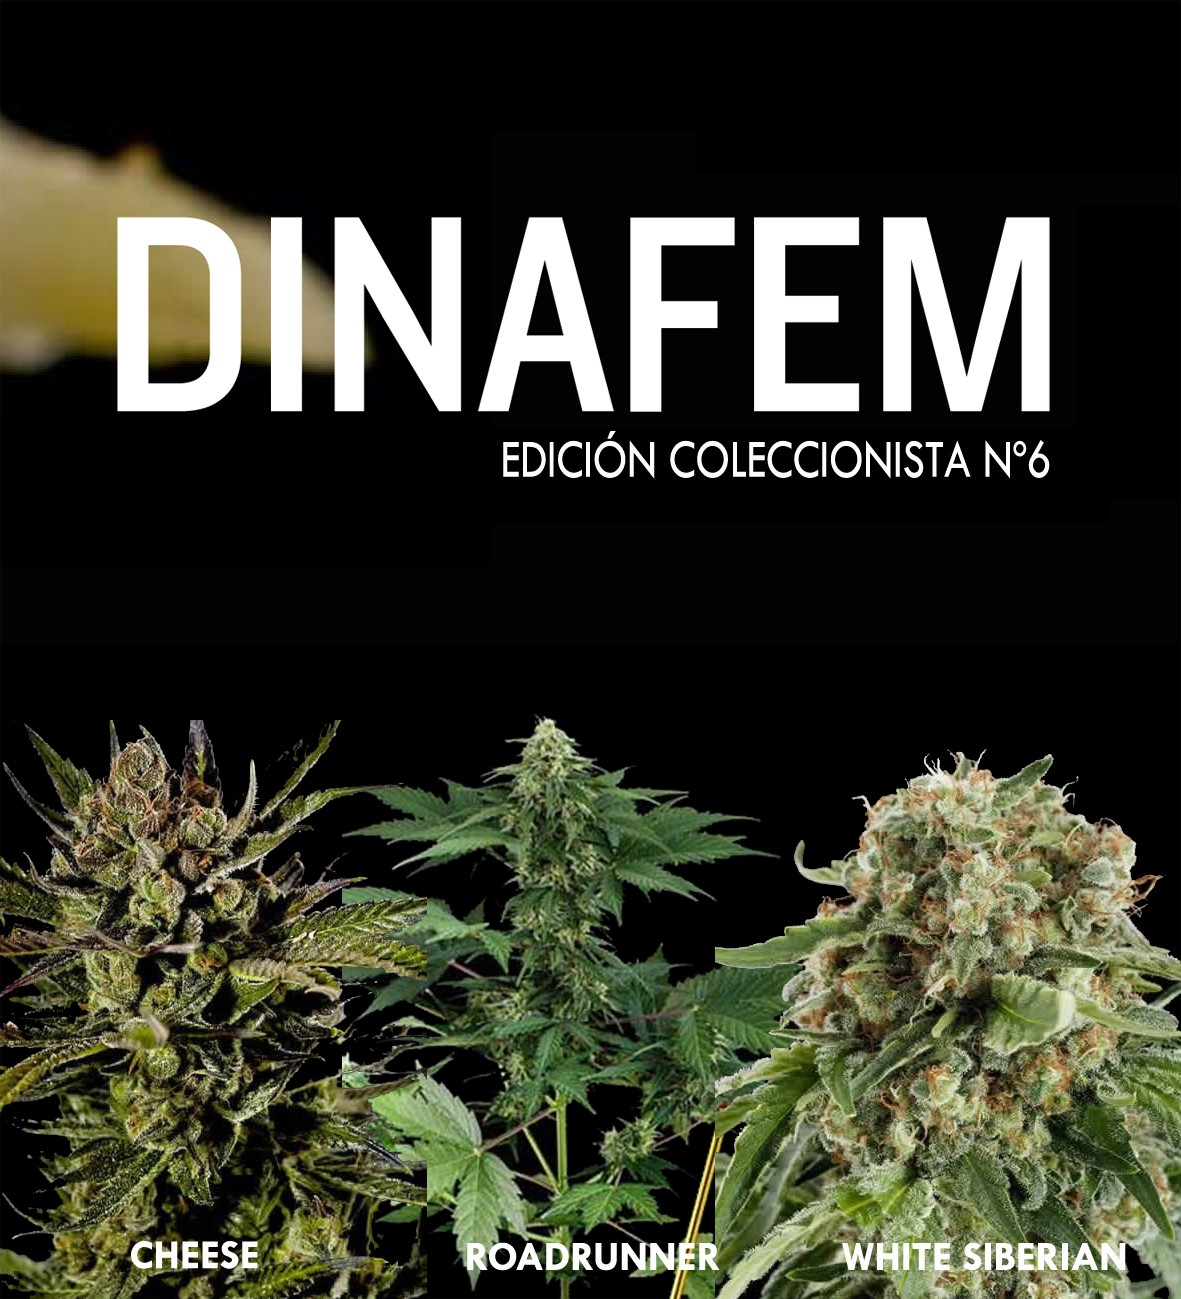 Dinafem collector #6 6 seeds - Collections - DINAFEM SEEDS